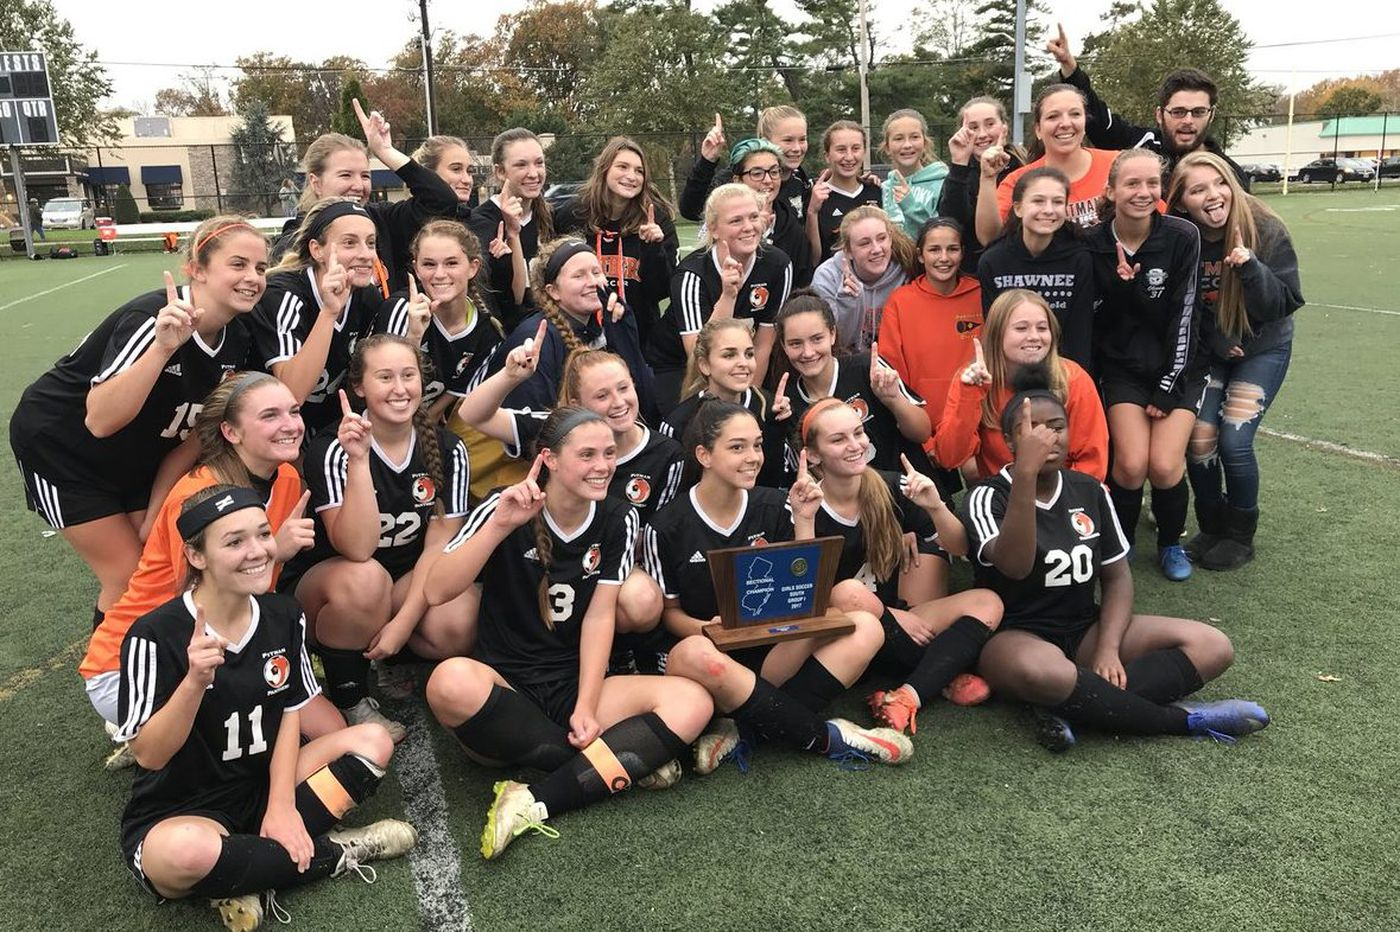 Tuesday's South Jersey roundup: Pitman falls to Shore in state semifinals